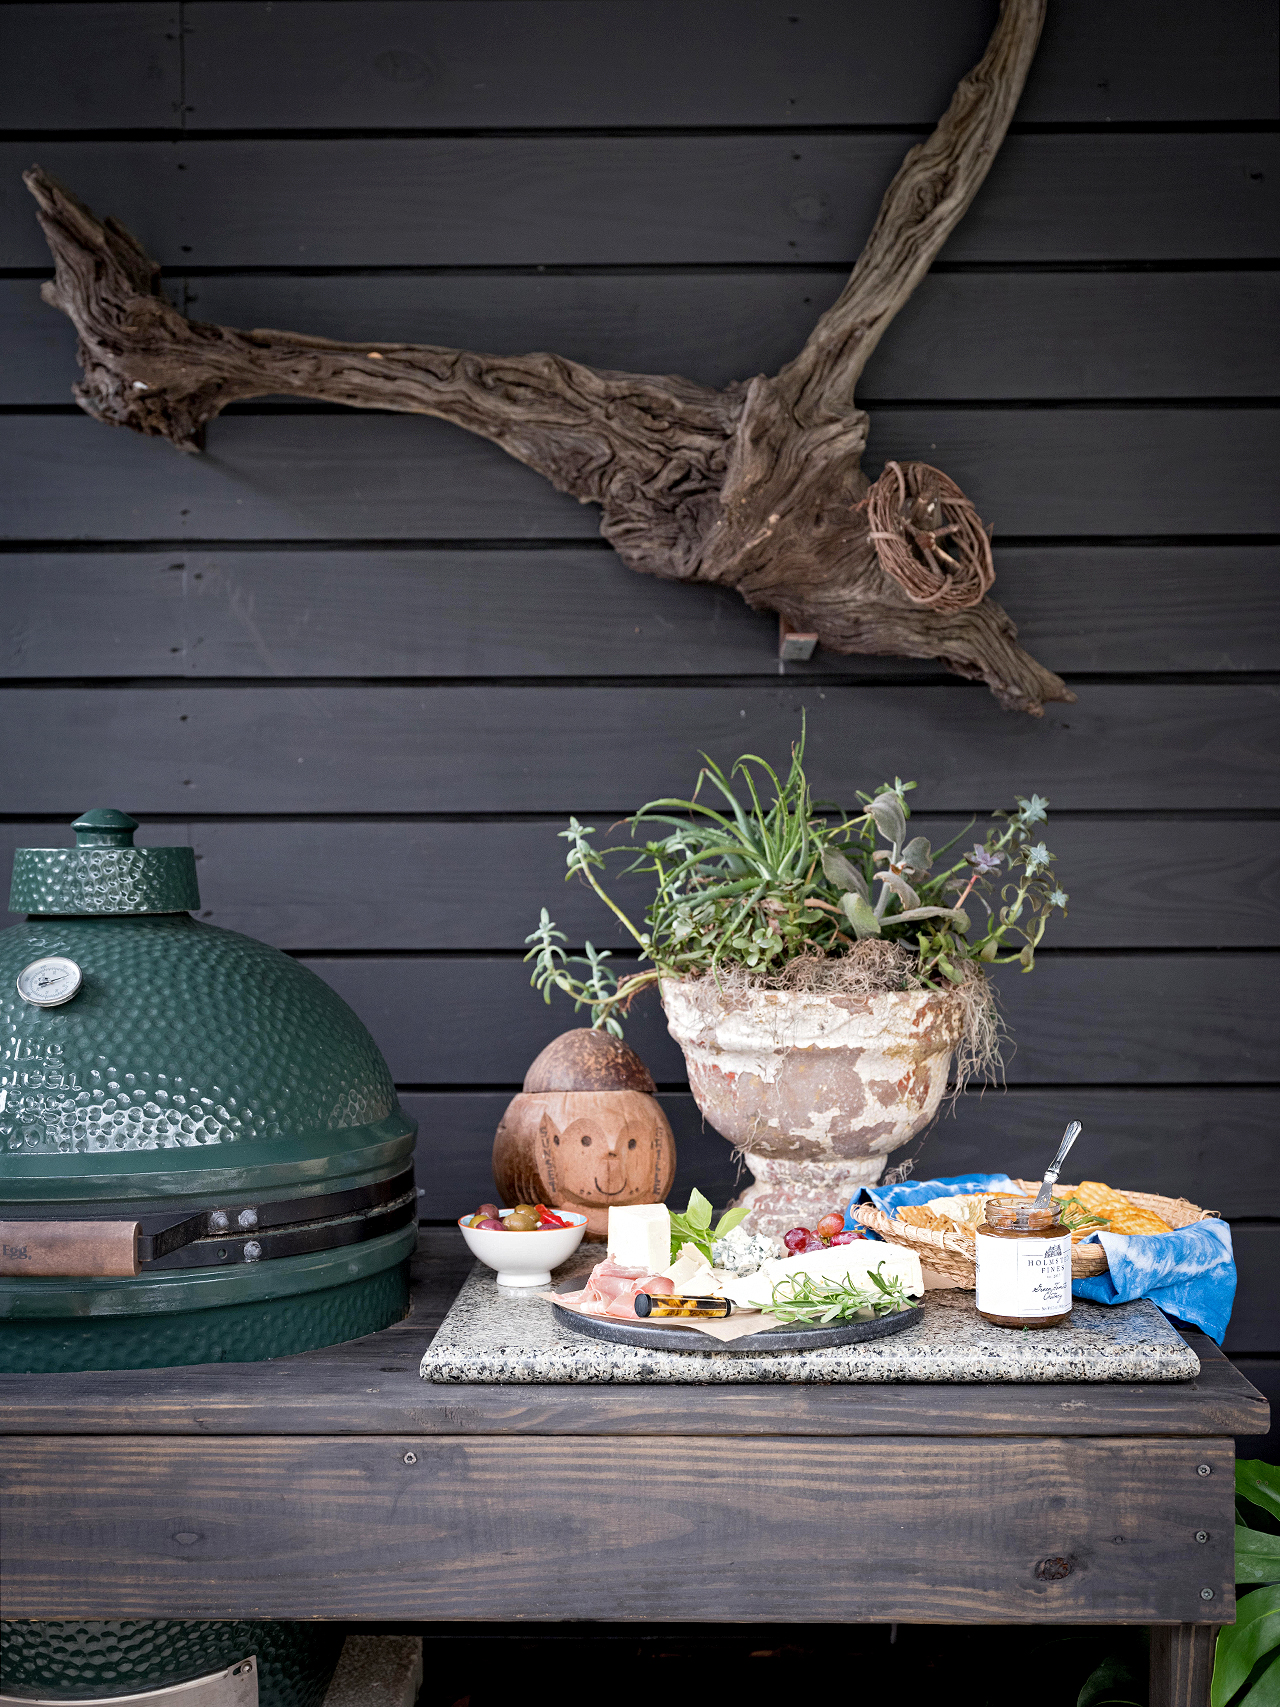 big green egg grill next to charcuterie on table